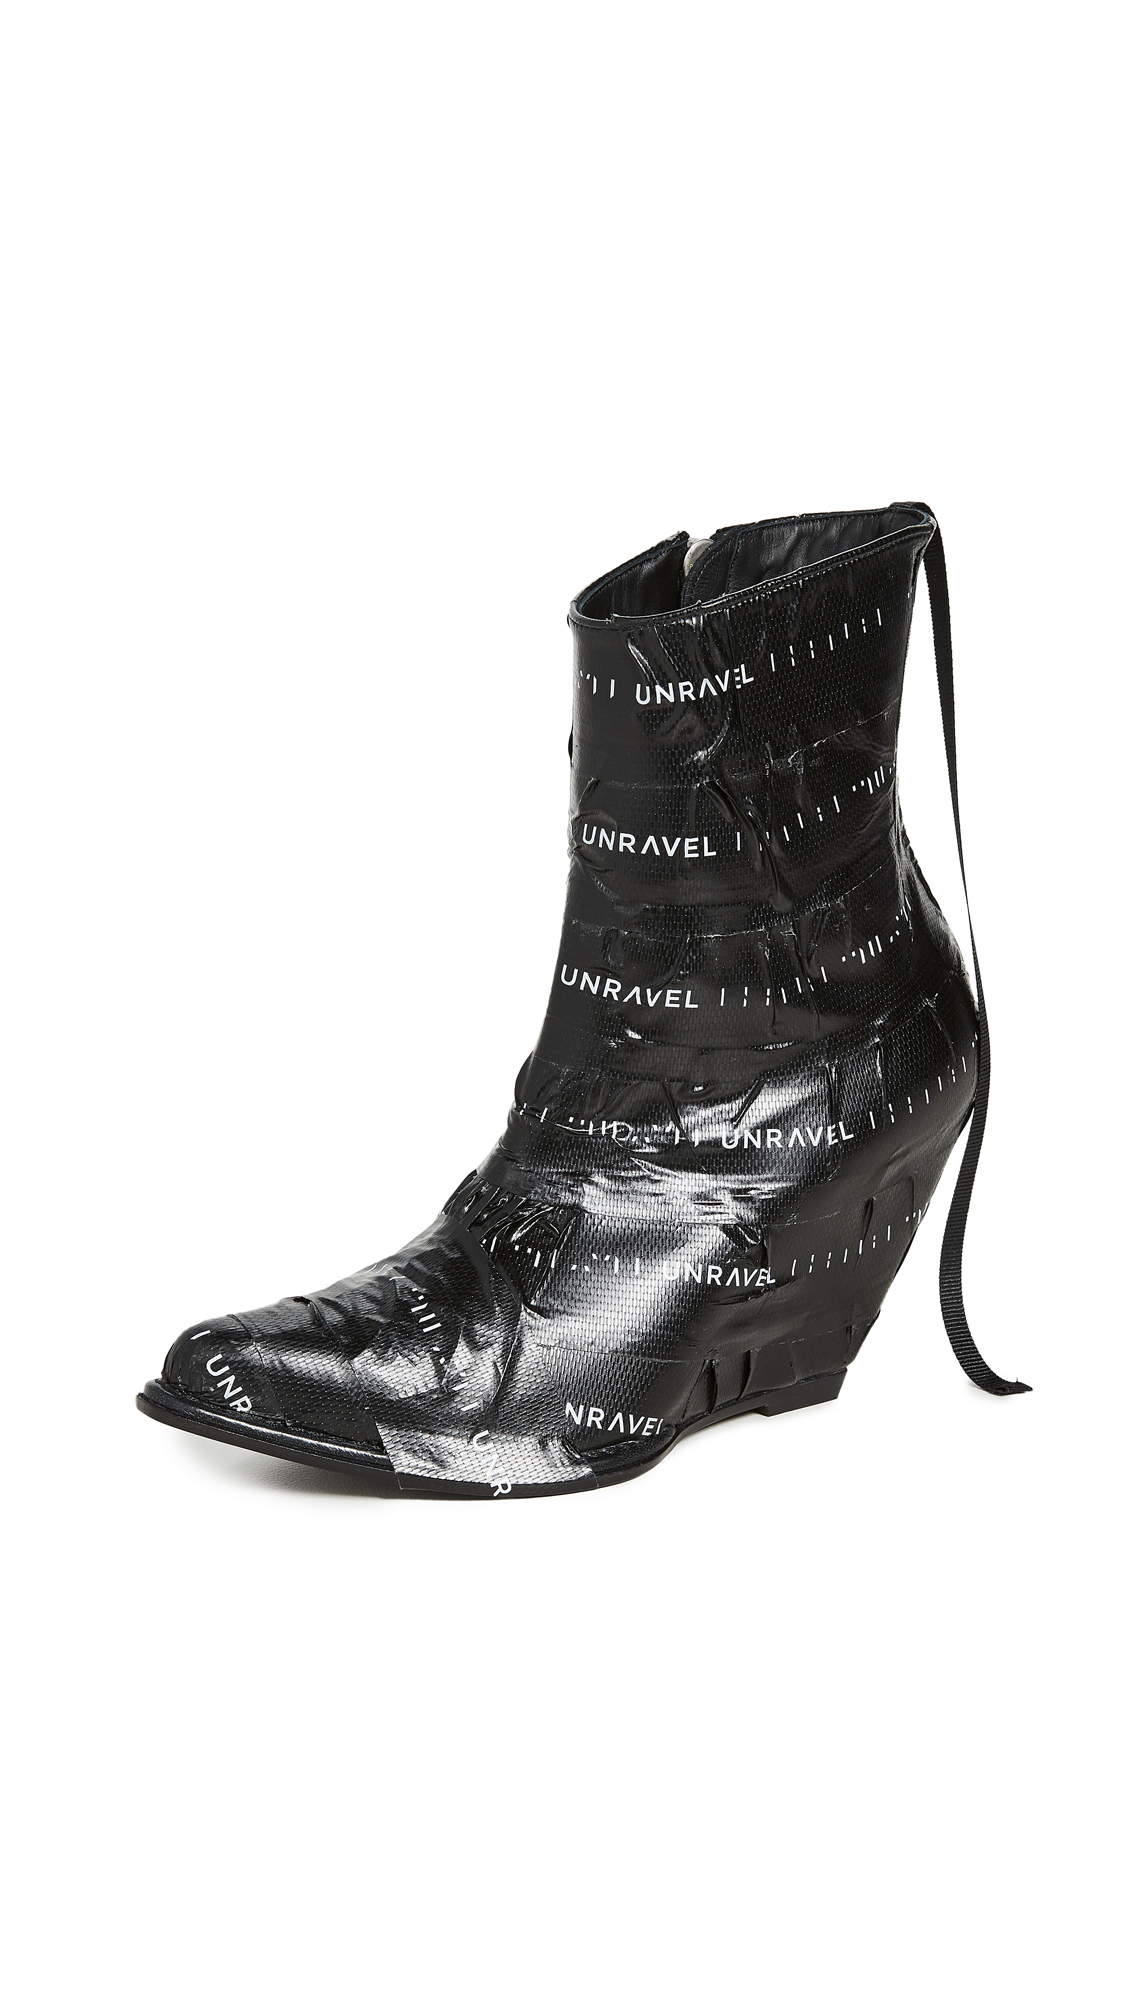 Unravel Project Unrvl Low Boots - 50% Off Sale